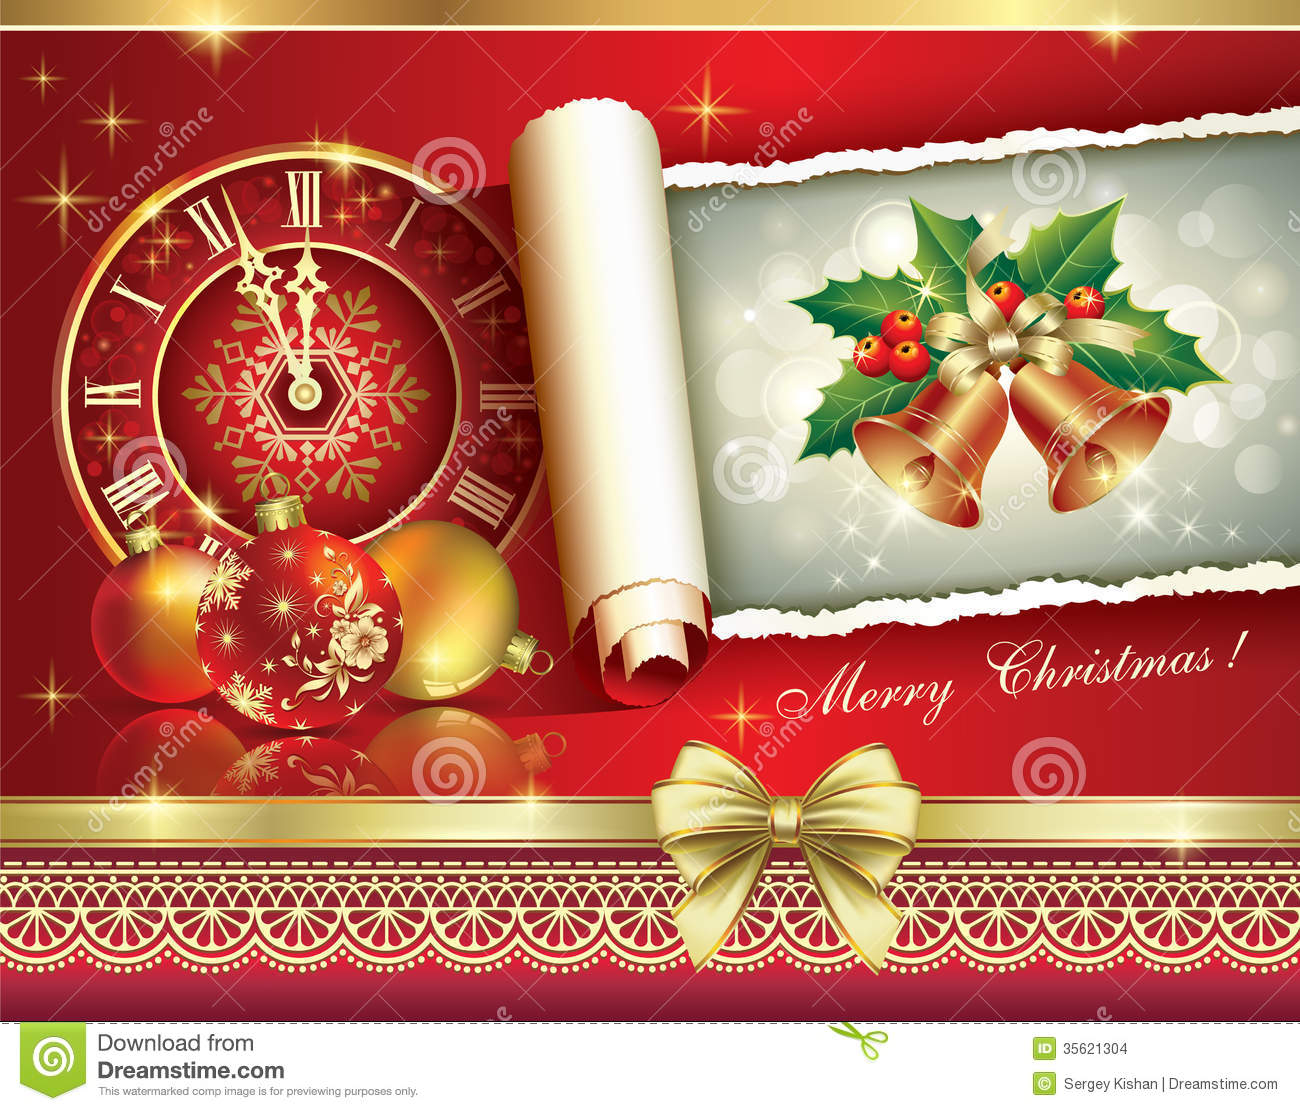 Christmas greeting card 2014 with a clock and ball stock for 2014 christmas decoration